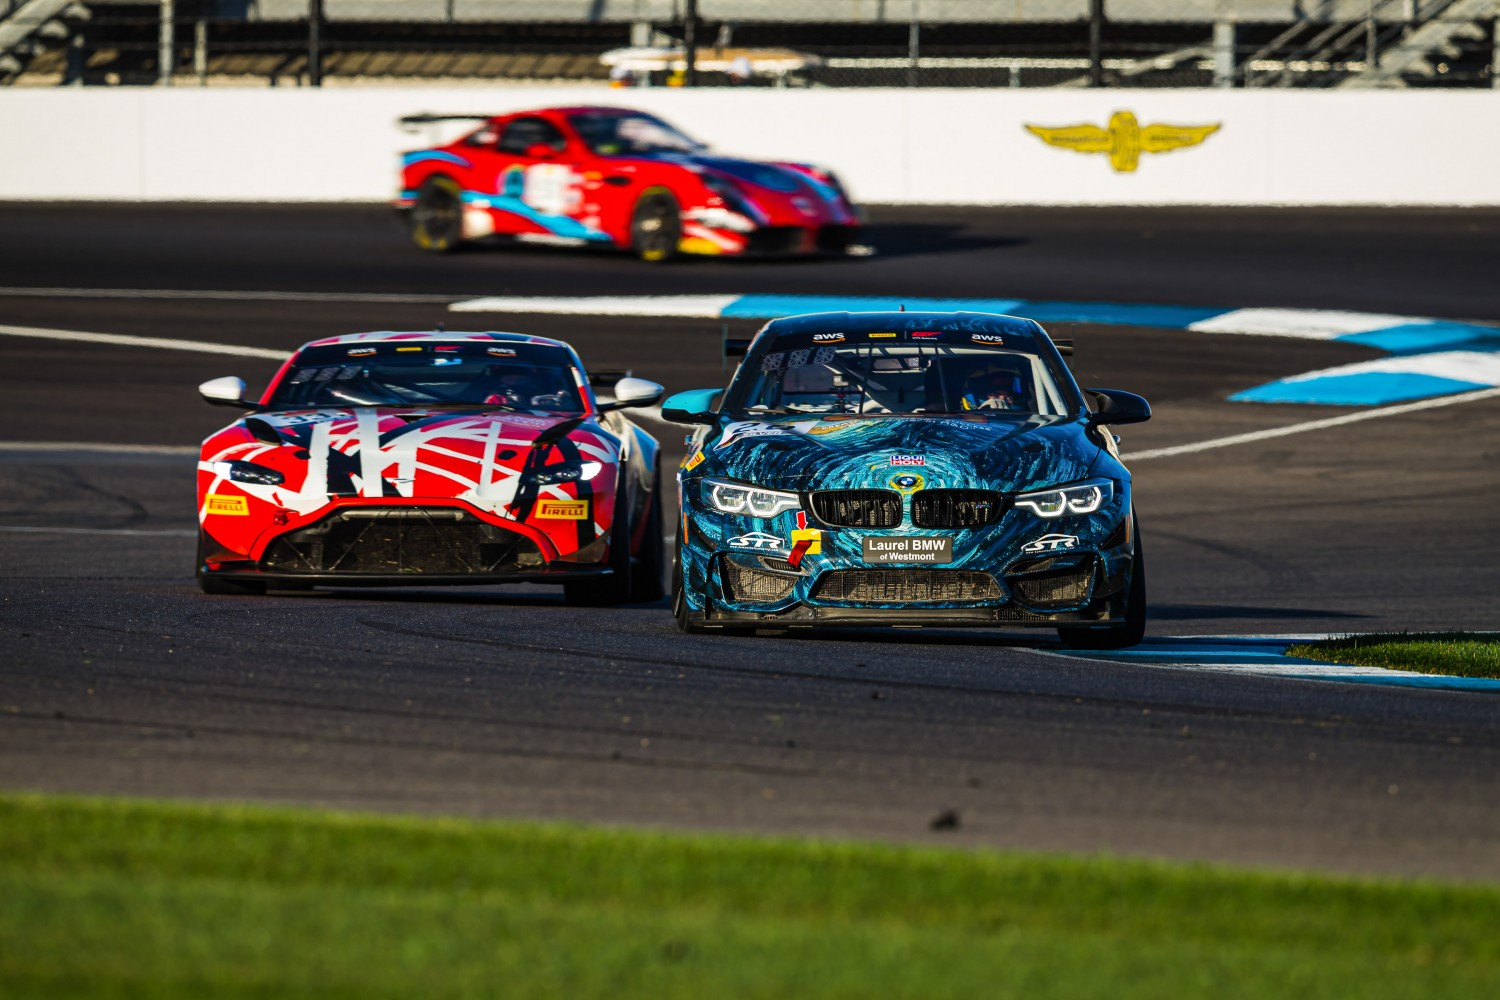 #28 BMW M4 GT4 of Nick Wittmer and Harry Gottsacker, ST Racing, GT4 SprintX, IN, Indianapolis, Indianapolis Motor Speedway, SRO, September 2020.  | Fabian Lagunas/SRO